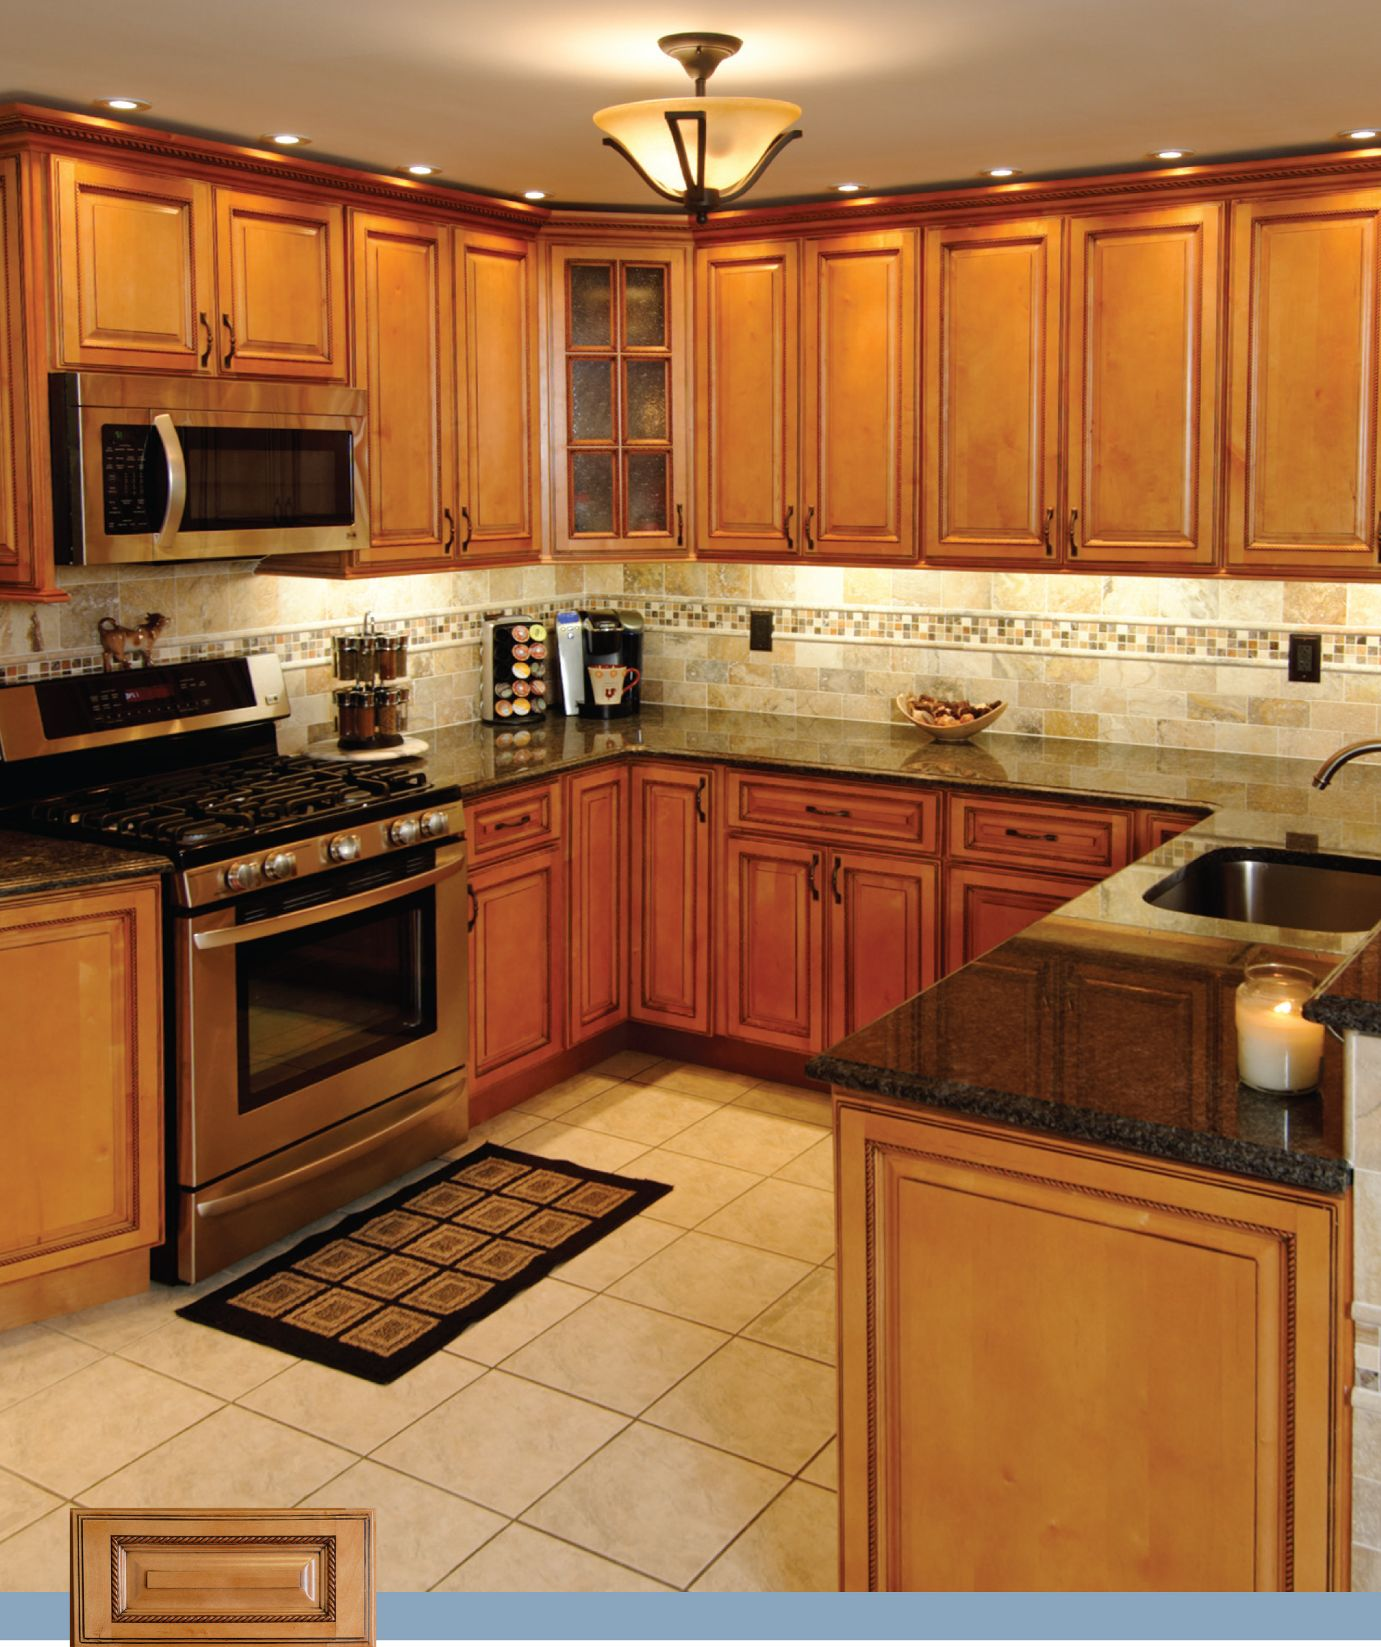 rta kitchen cabinets kitchen remodel cost 17 best ideas about Rta Kitchen Cabinets on Pinterest Light oak cabinets Dark counters and Discount cabinets